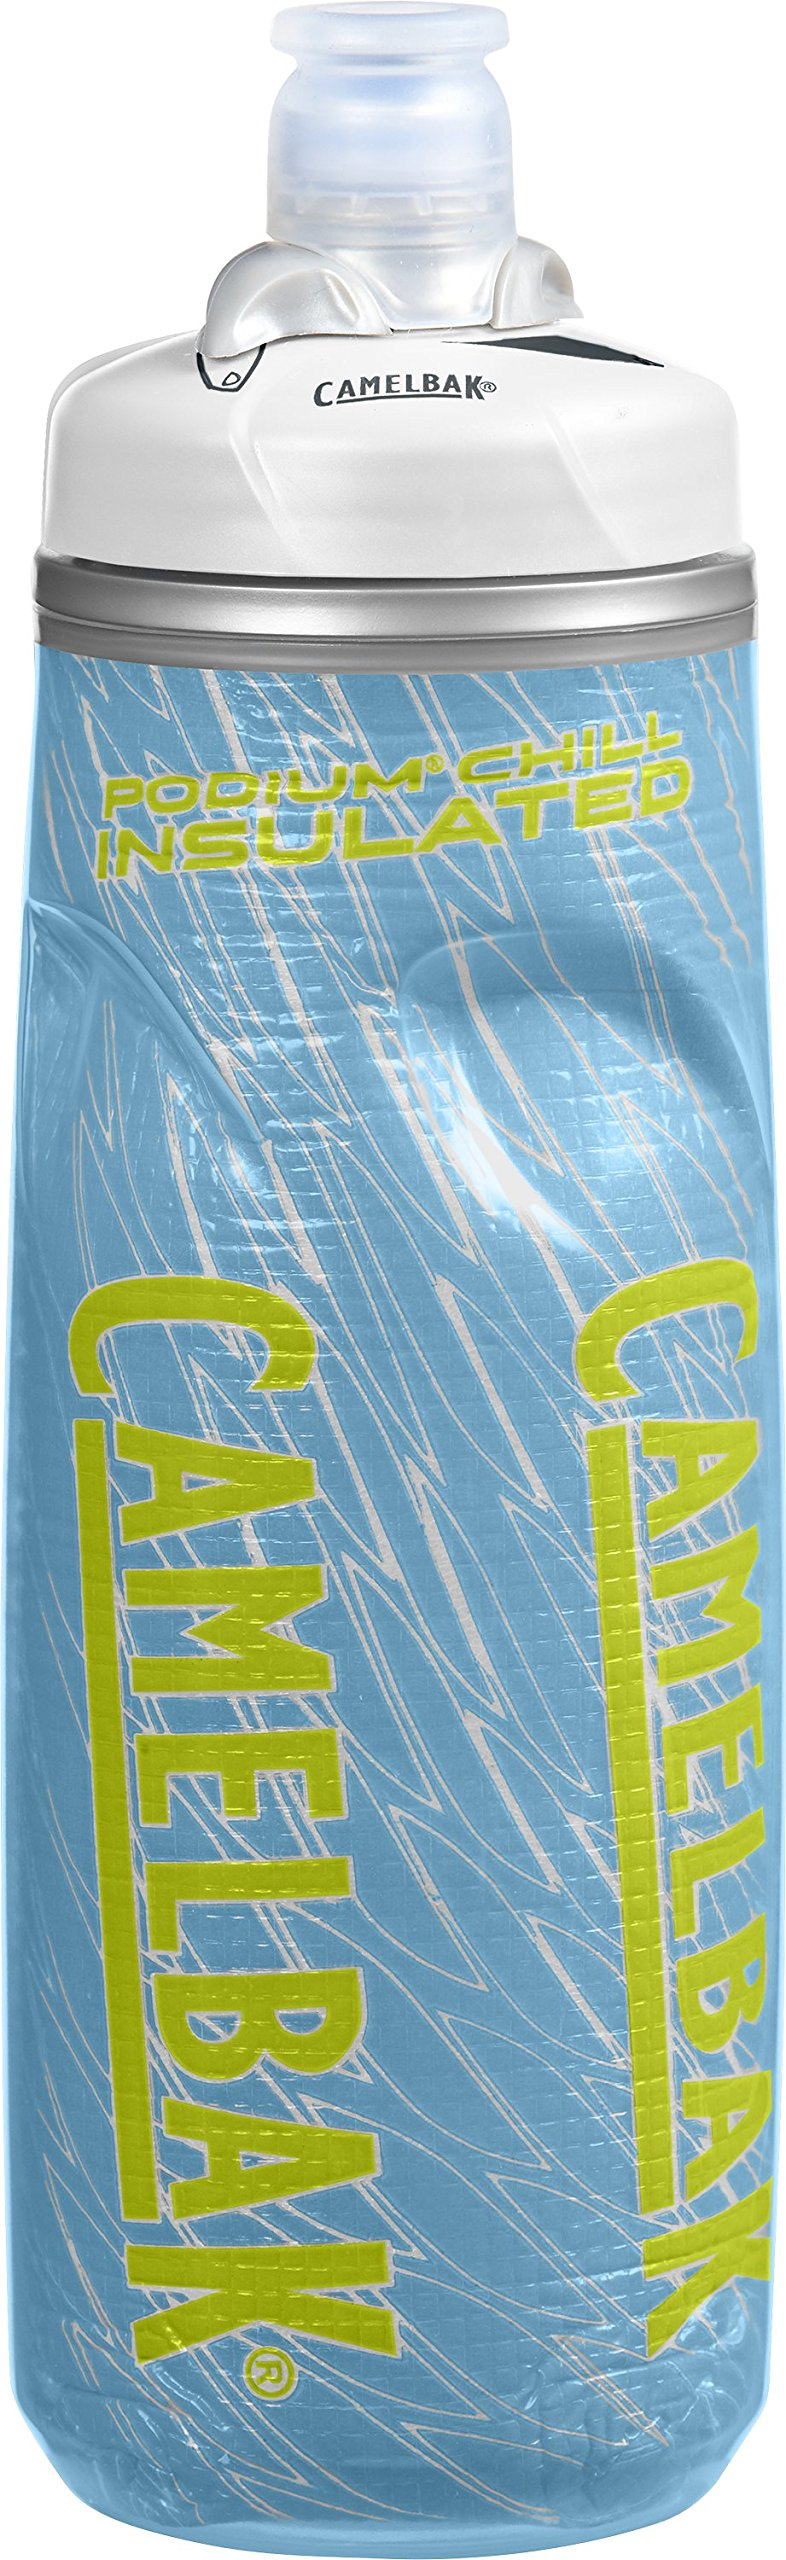 CamelBak Podium Chill Insulated Water Bottle (Discontinued Styles)